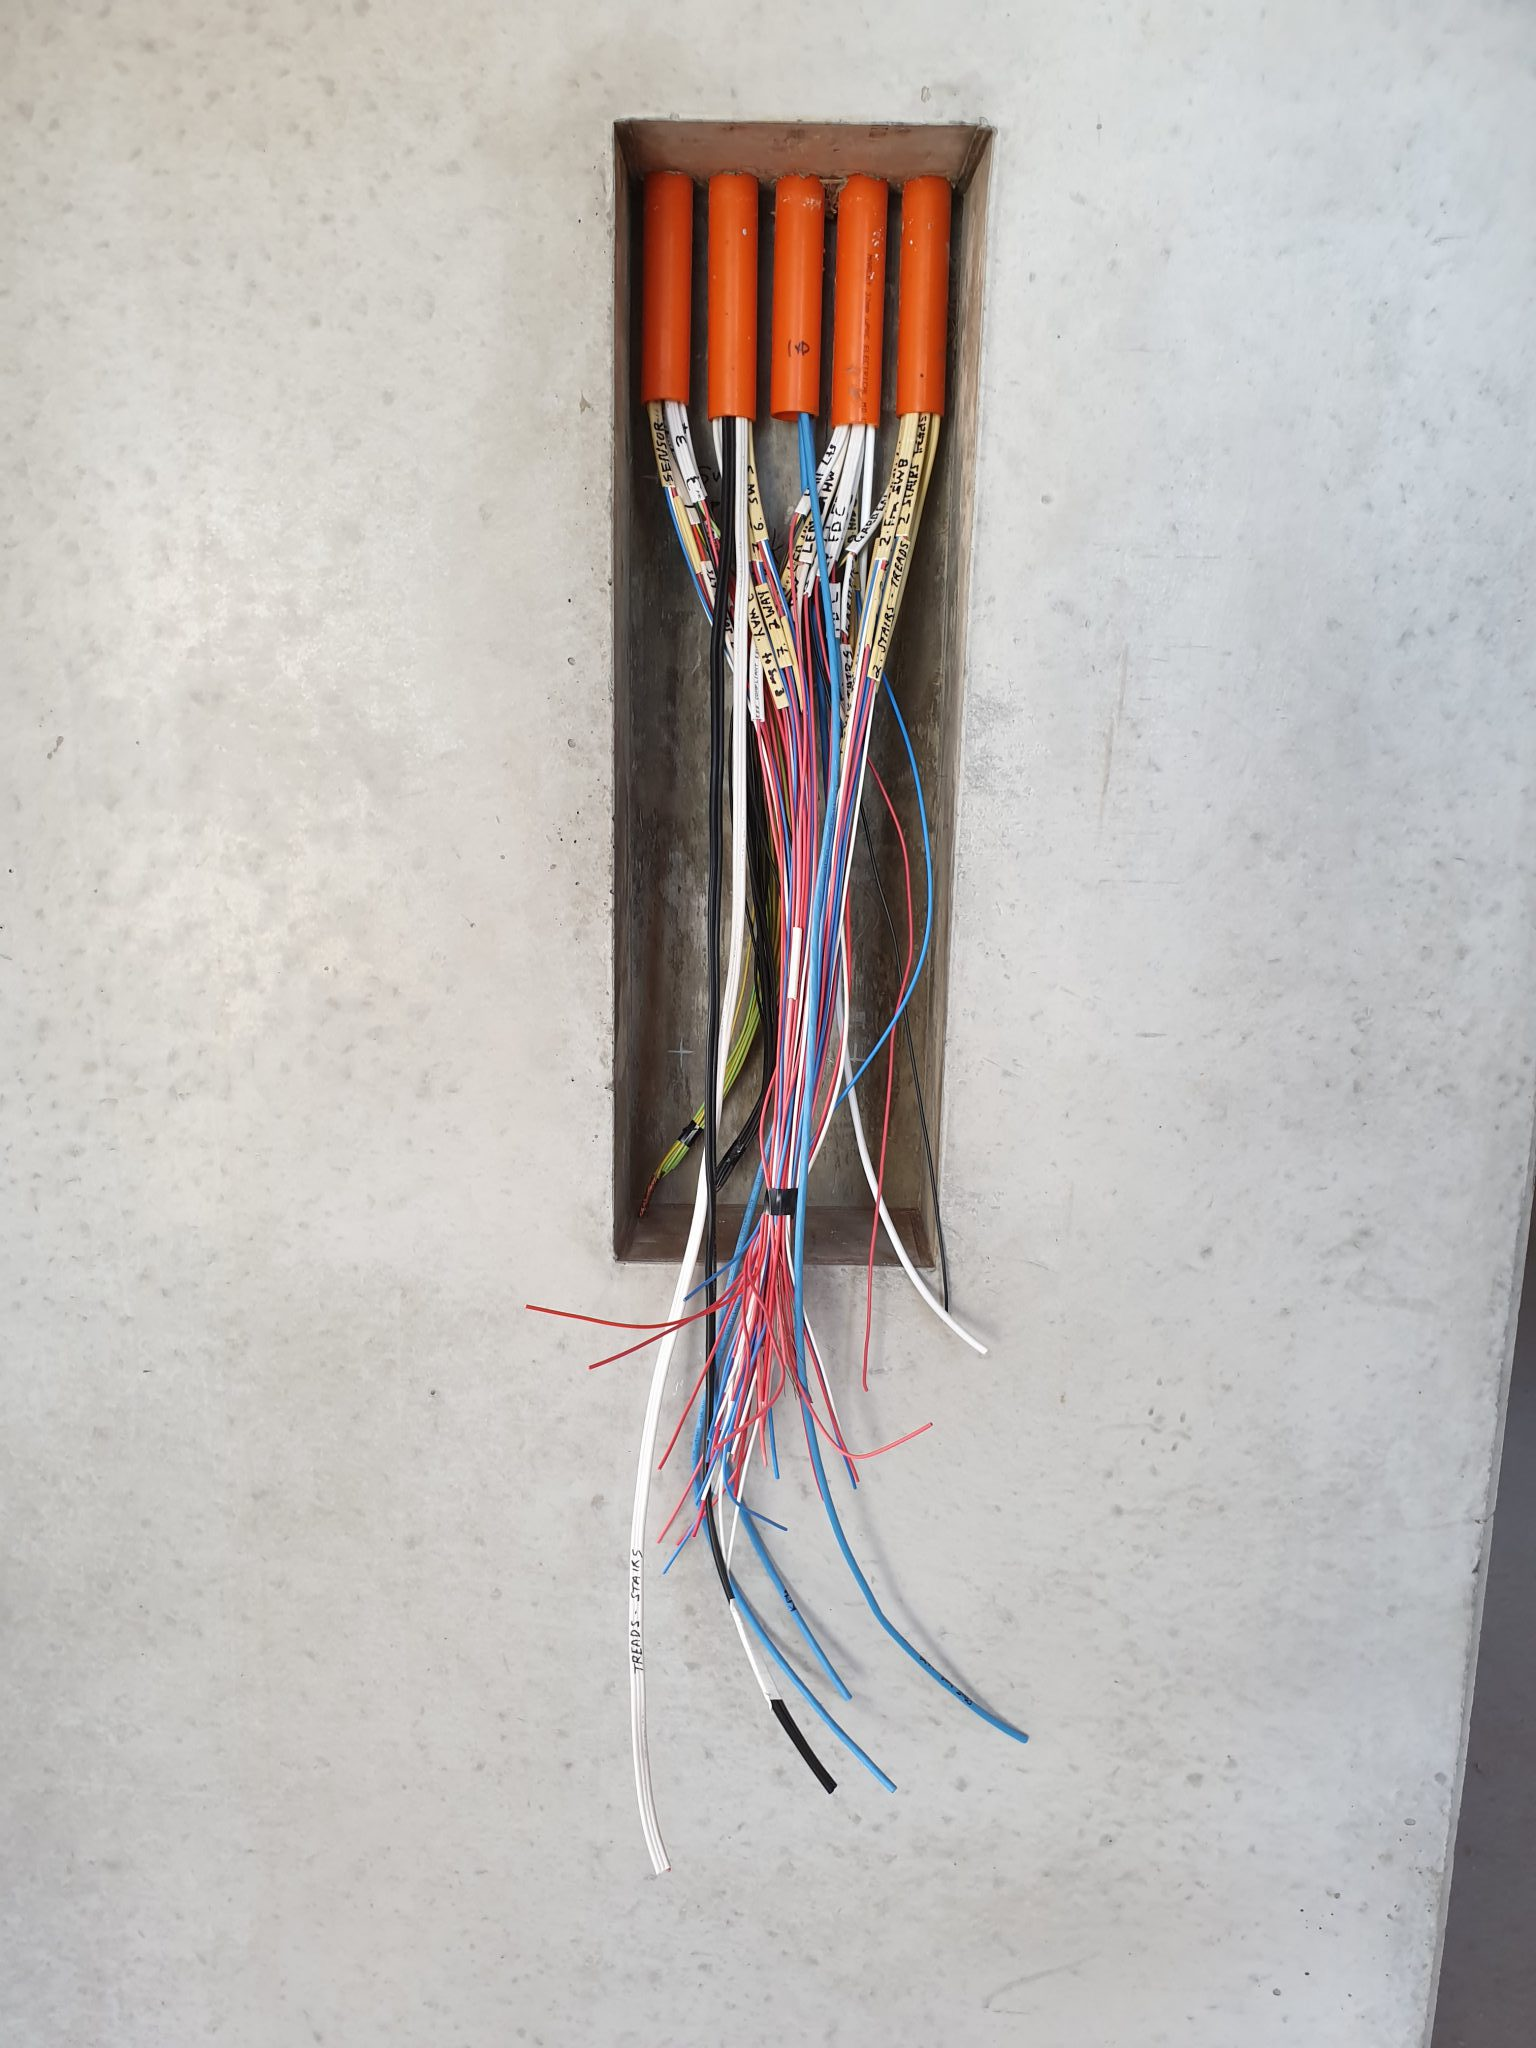 House wiring auckland